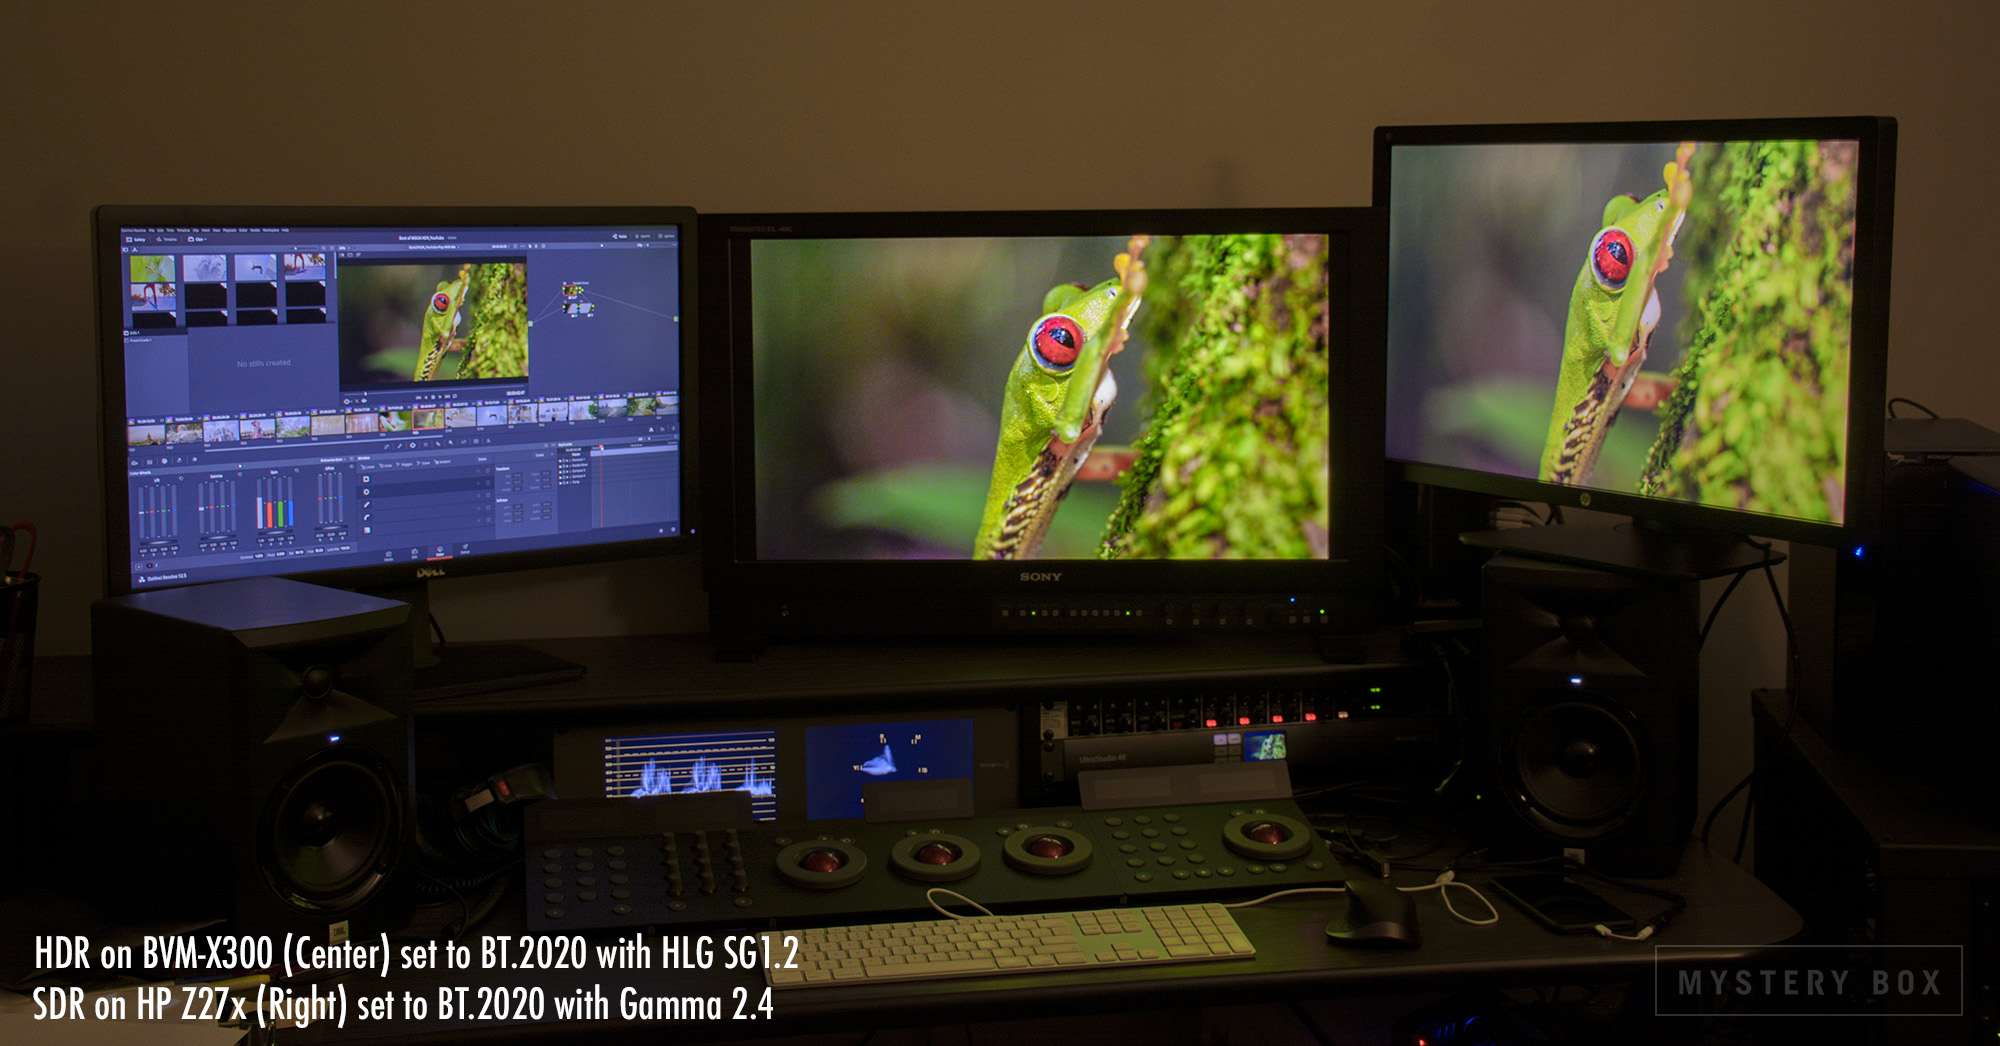 Grading HLG with two reference displays - one in HDR, one in SDR, to ensure the best possible contrast in both.